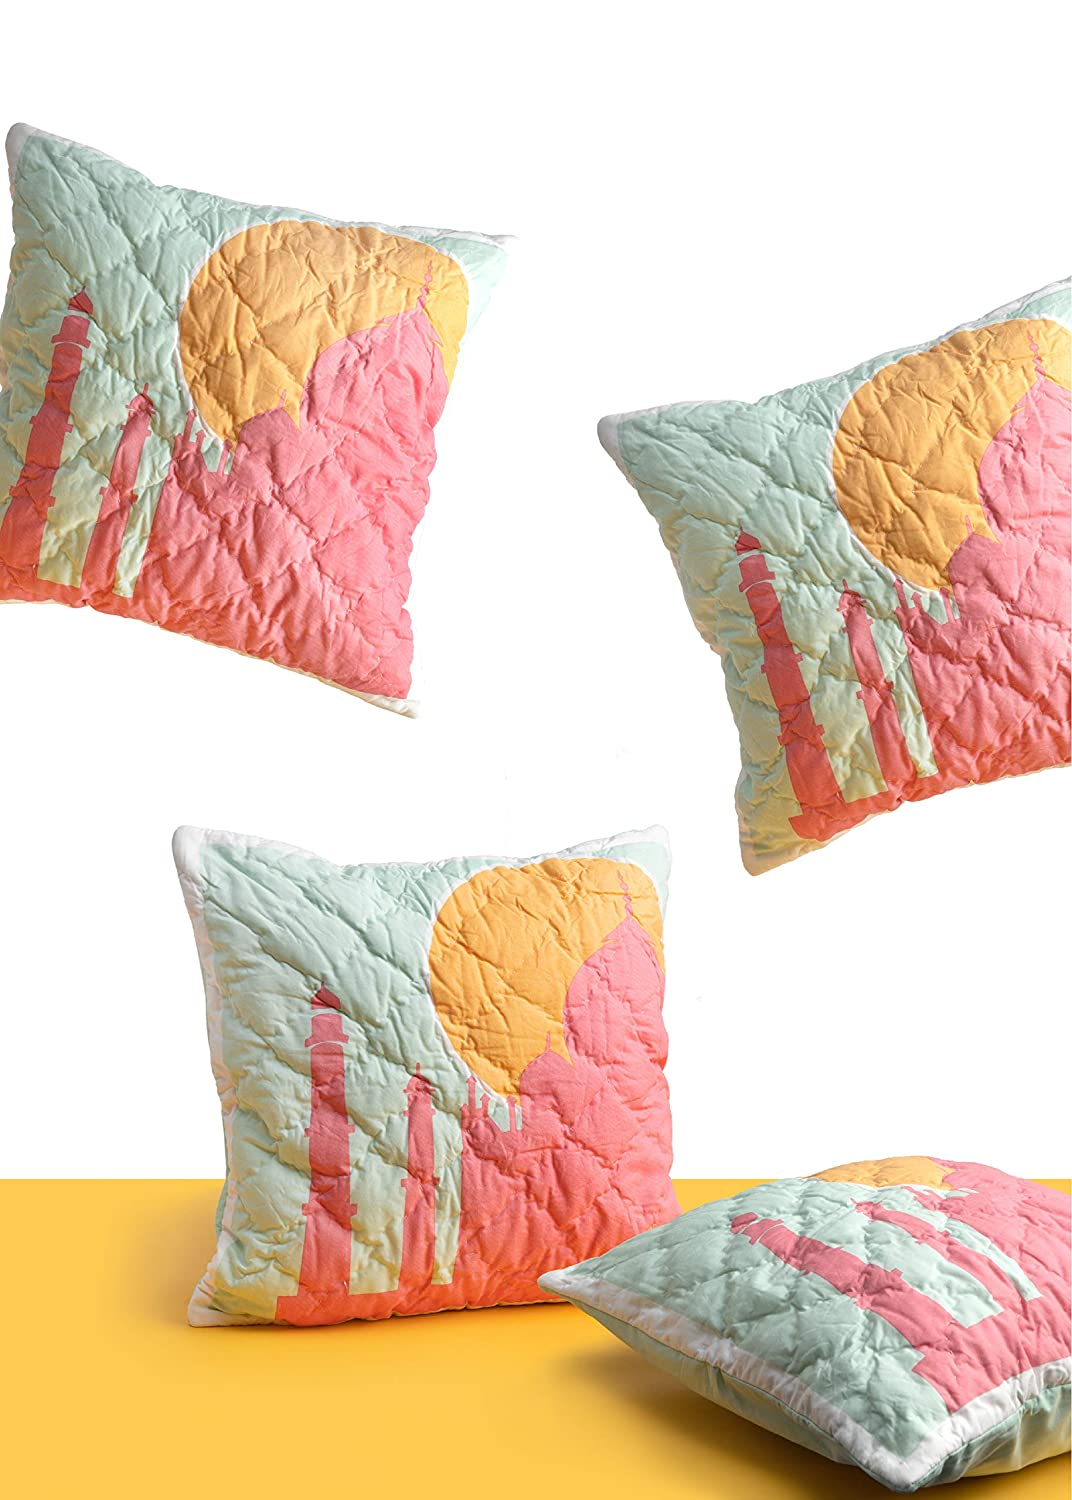 Neck Pillow Cover 86 x 68 Pink Guppy Girls 100/% Cotton Hot Pink /& Blue Duvet Cover for Twin Bed Quilted Taj Mahal Throw Pillow 16x 16 6 x 16 with Paisley Faces 3 Piece Bedding Set